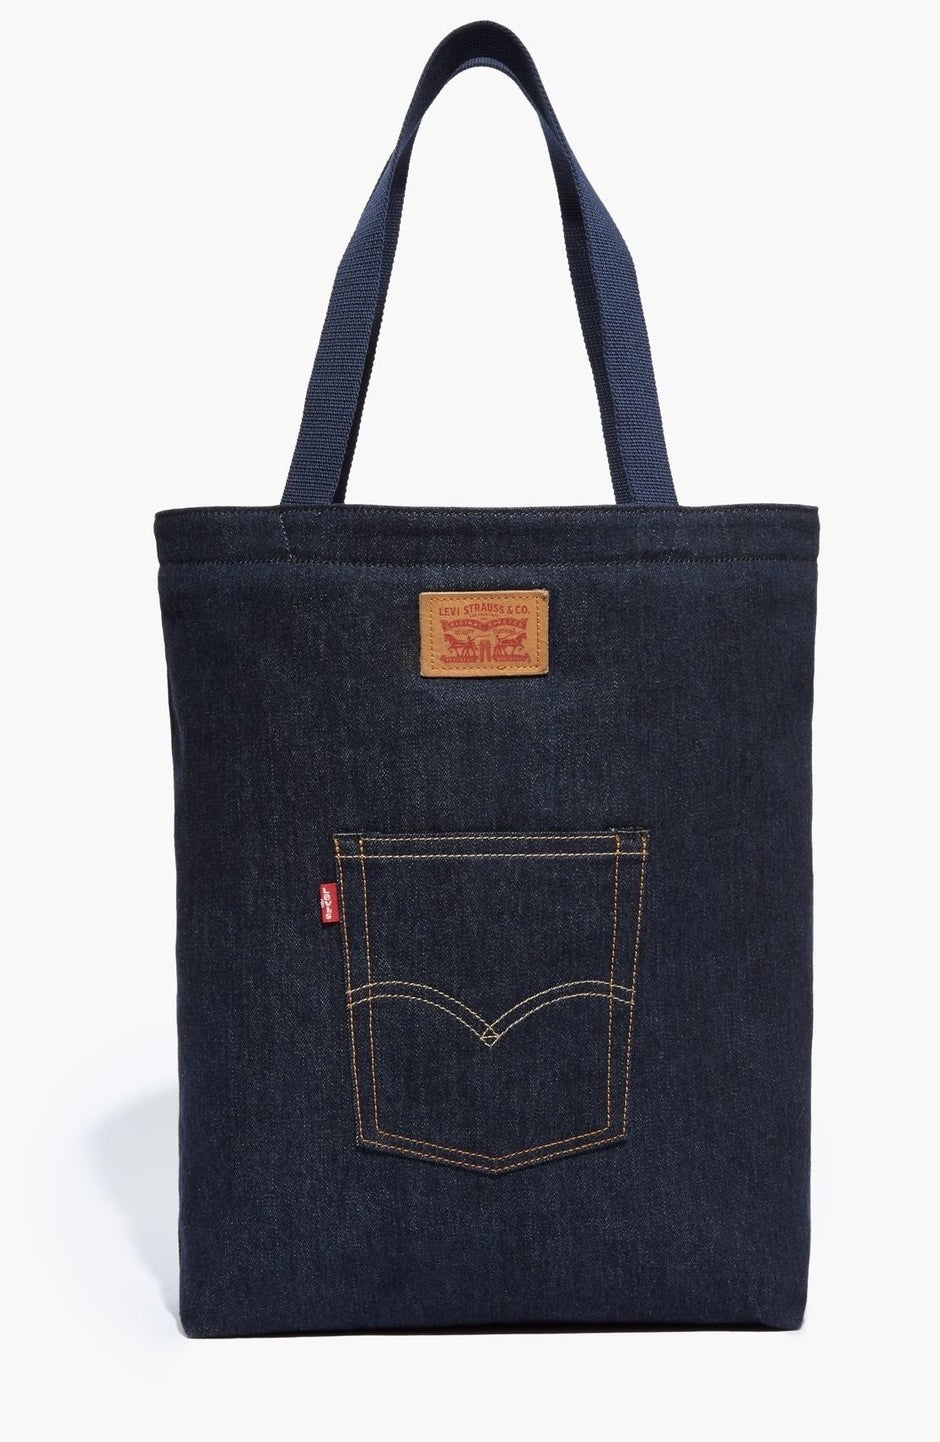 denim tote bag with a levi's pocket on the back